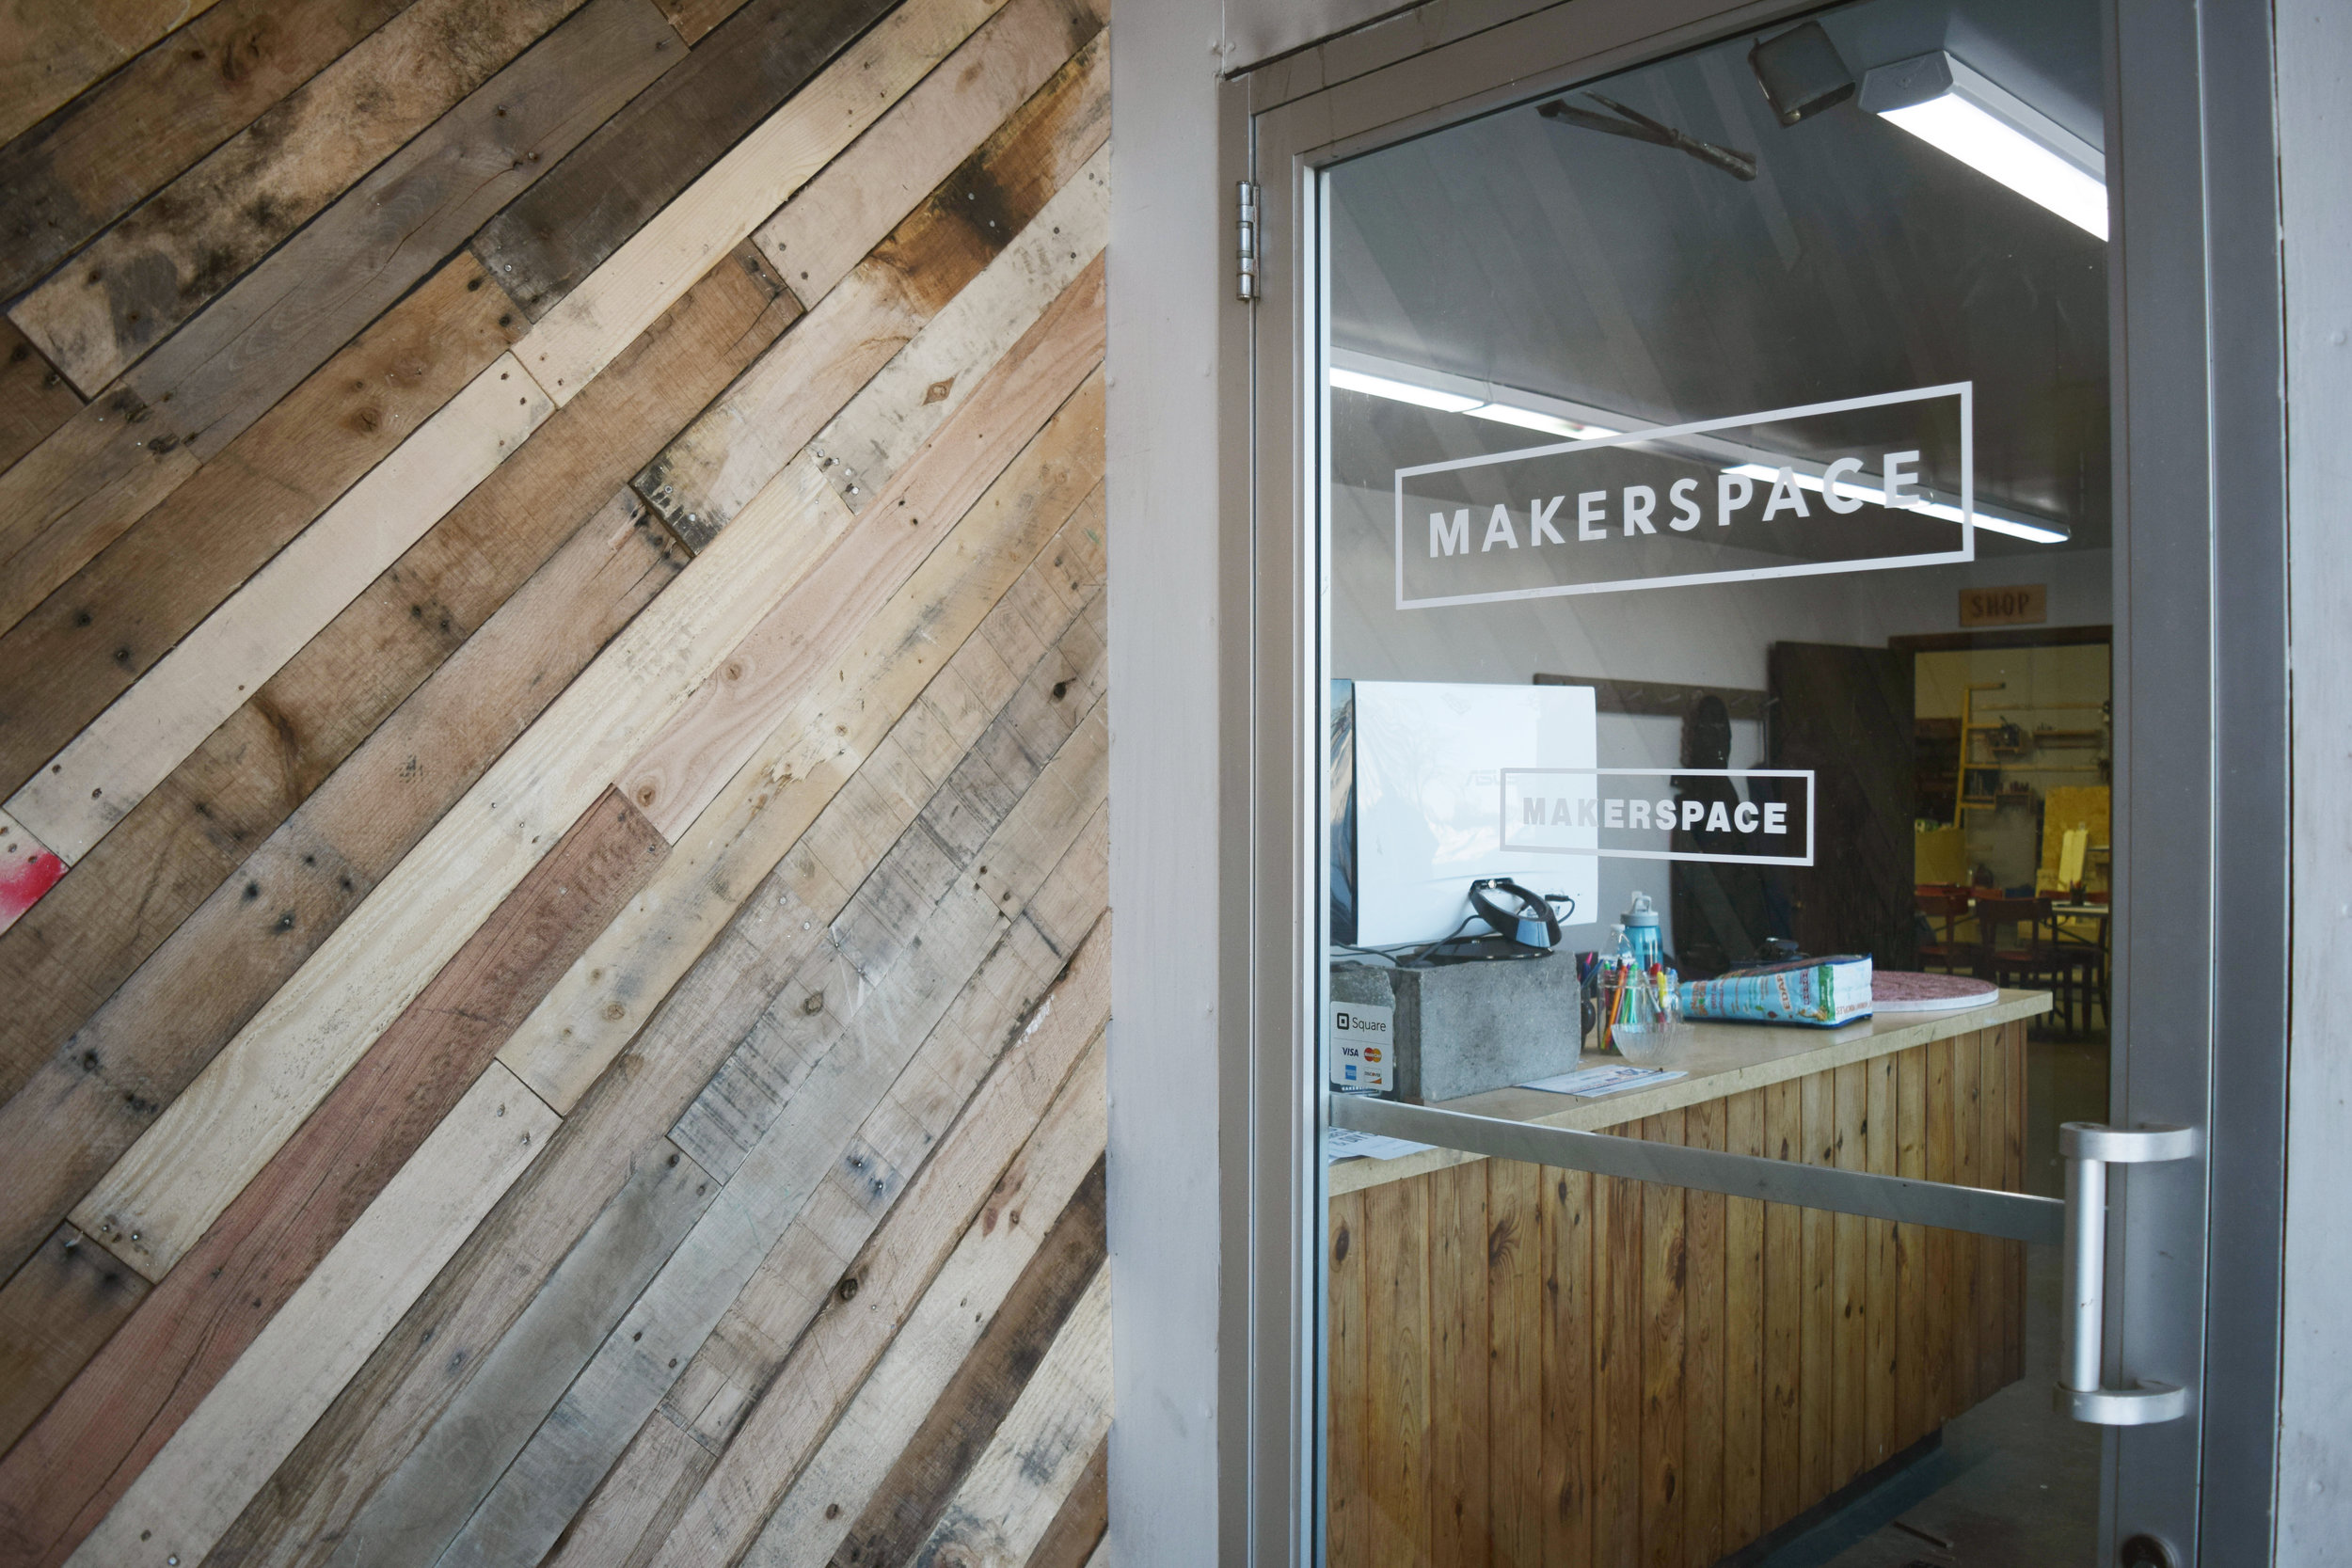 About - Discover more about our Makerspace,the Maker movement, and how and why it all got started.